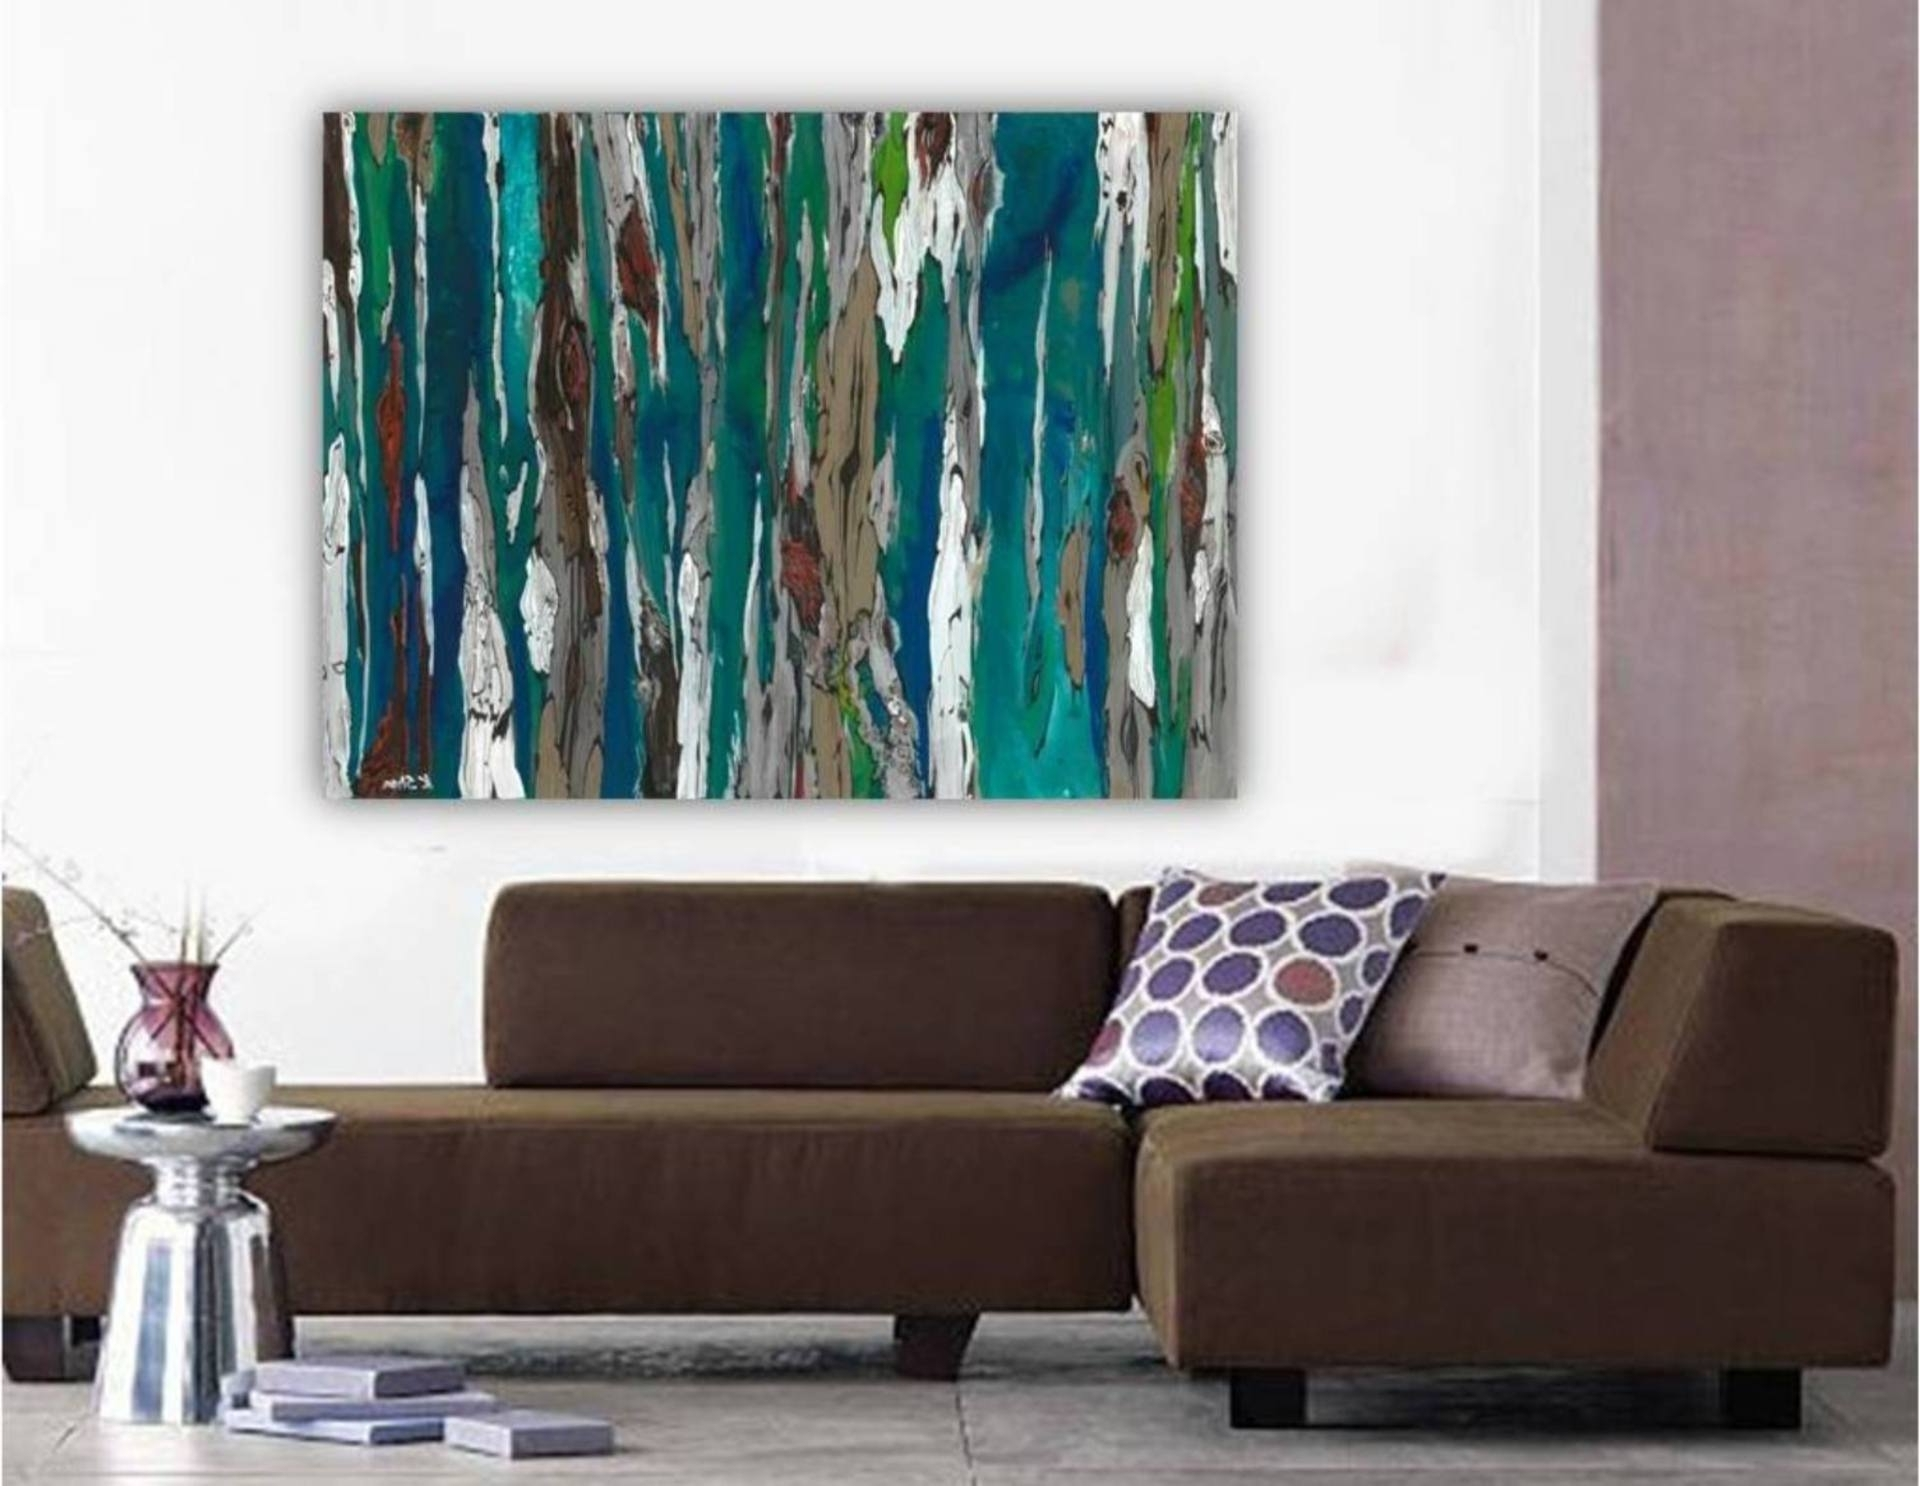 Saatchi Art: Large Contemporary Original Abstract Tree Landscape Pertaining To Well Known Teal And Brown Wall Art (View 12 of 15)